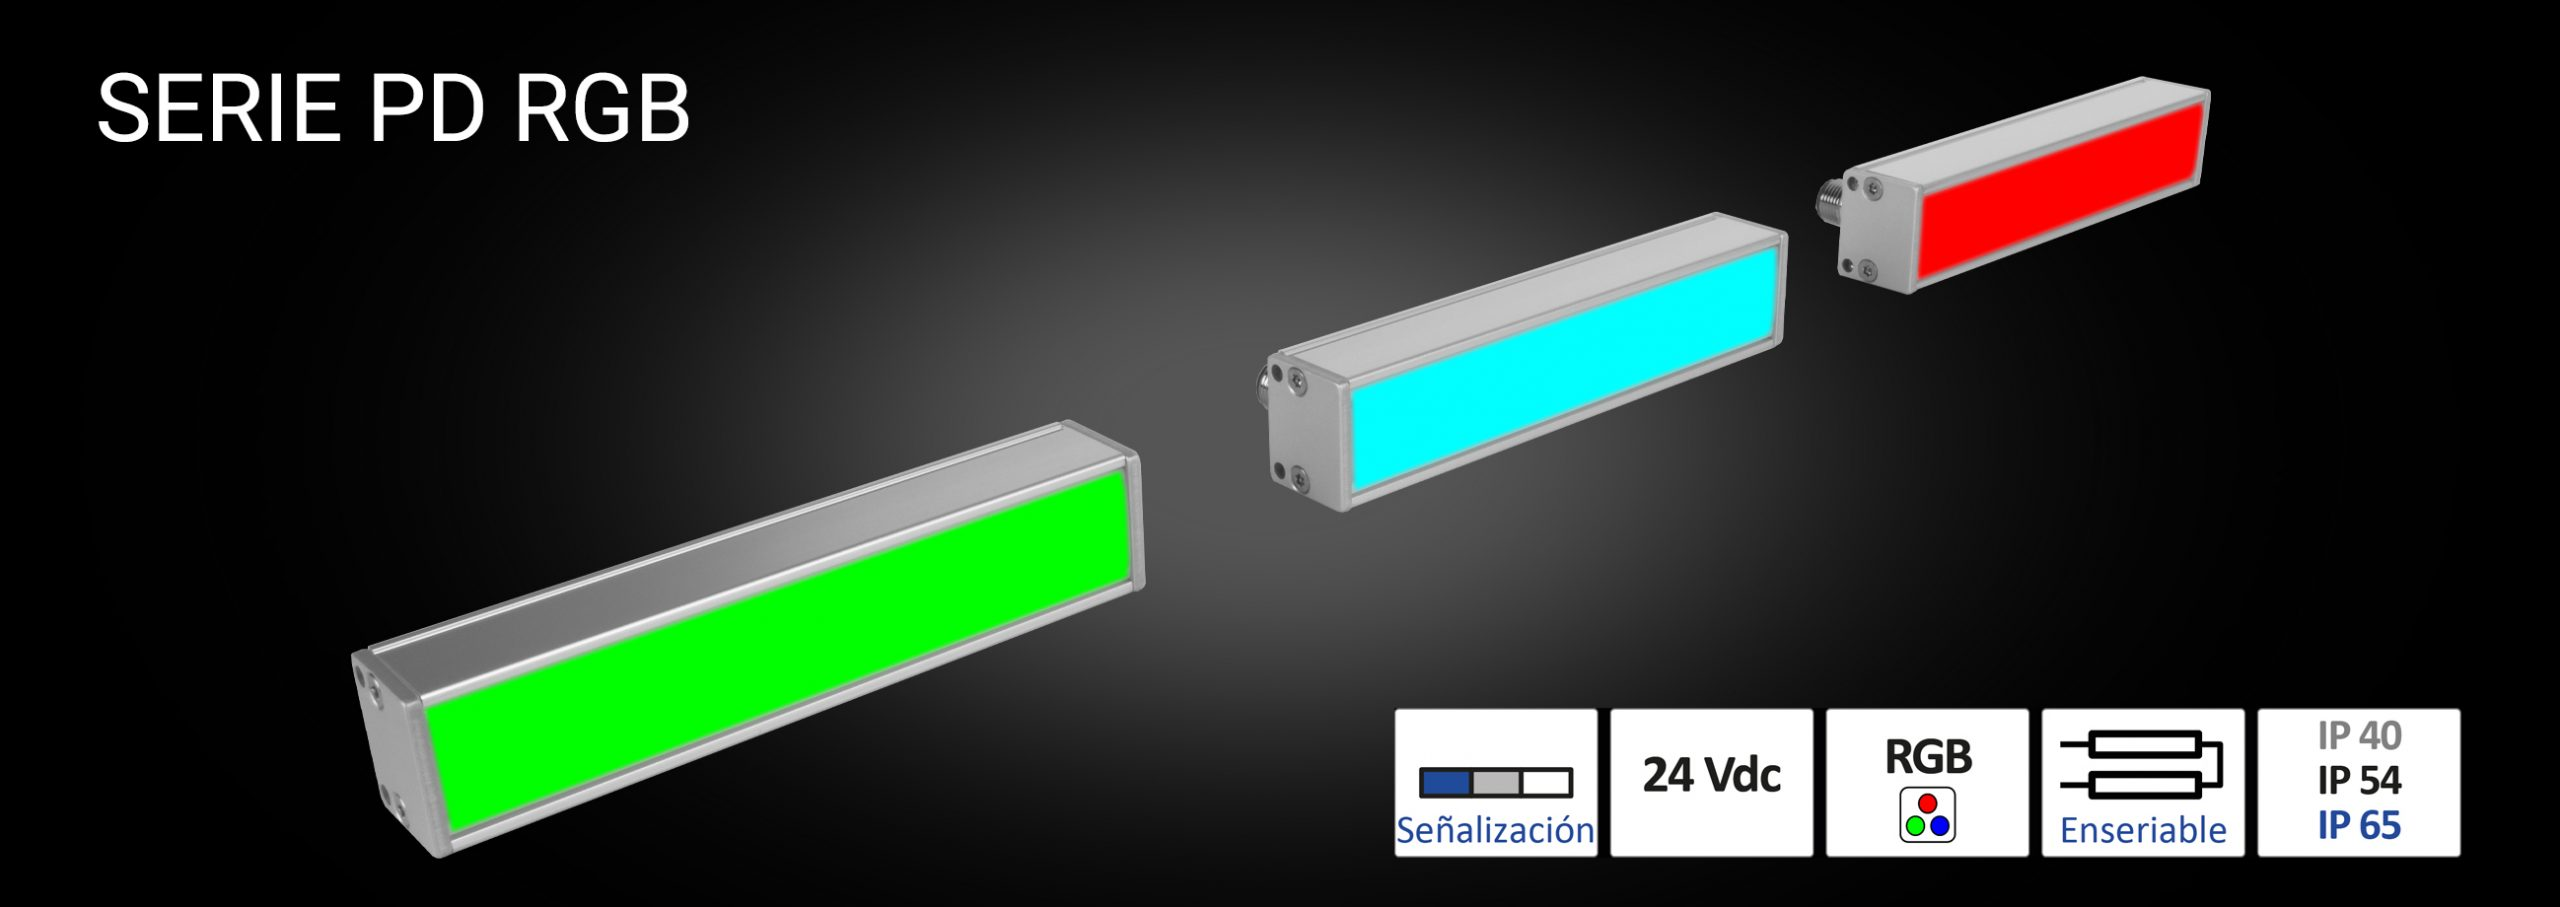 serie_pd_slider_2x-2-scaled